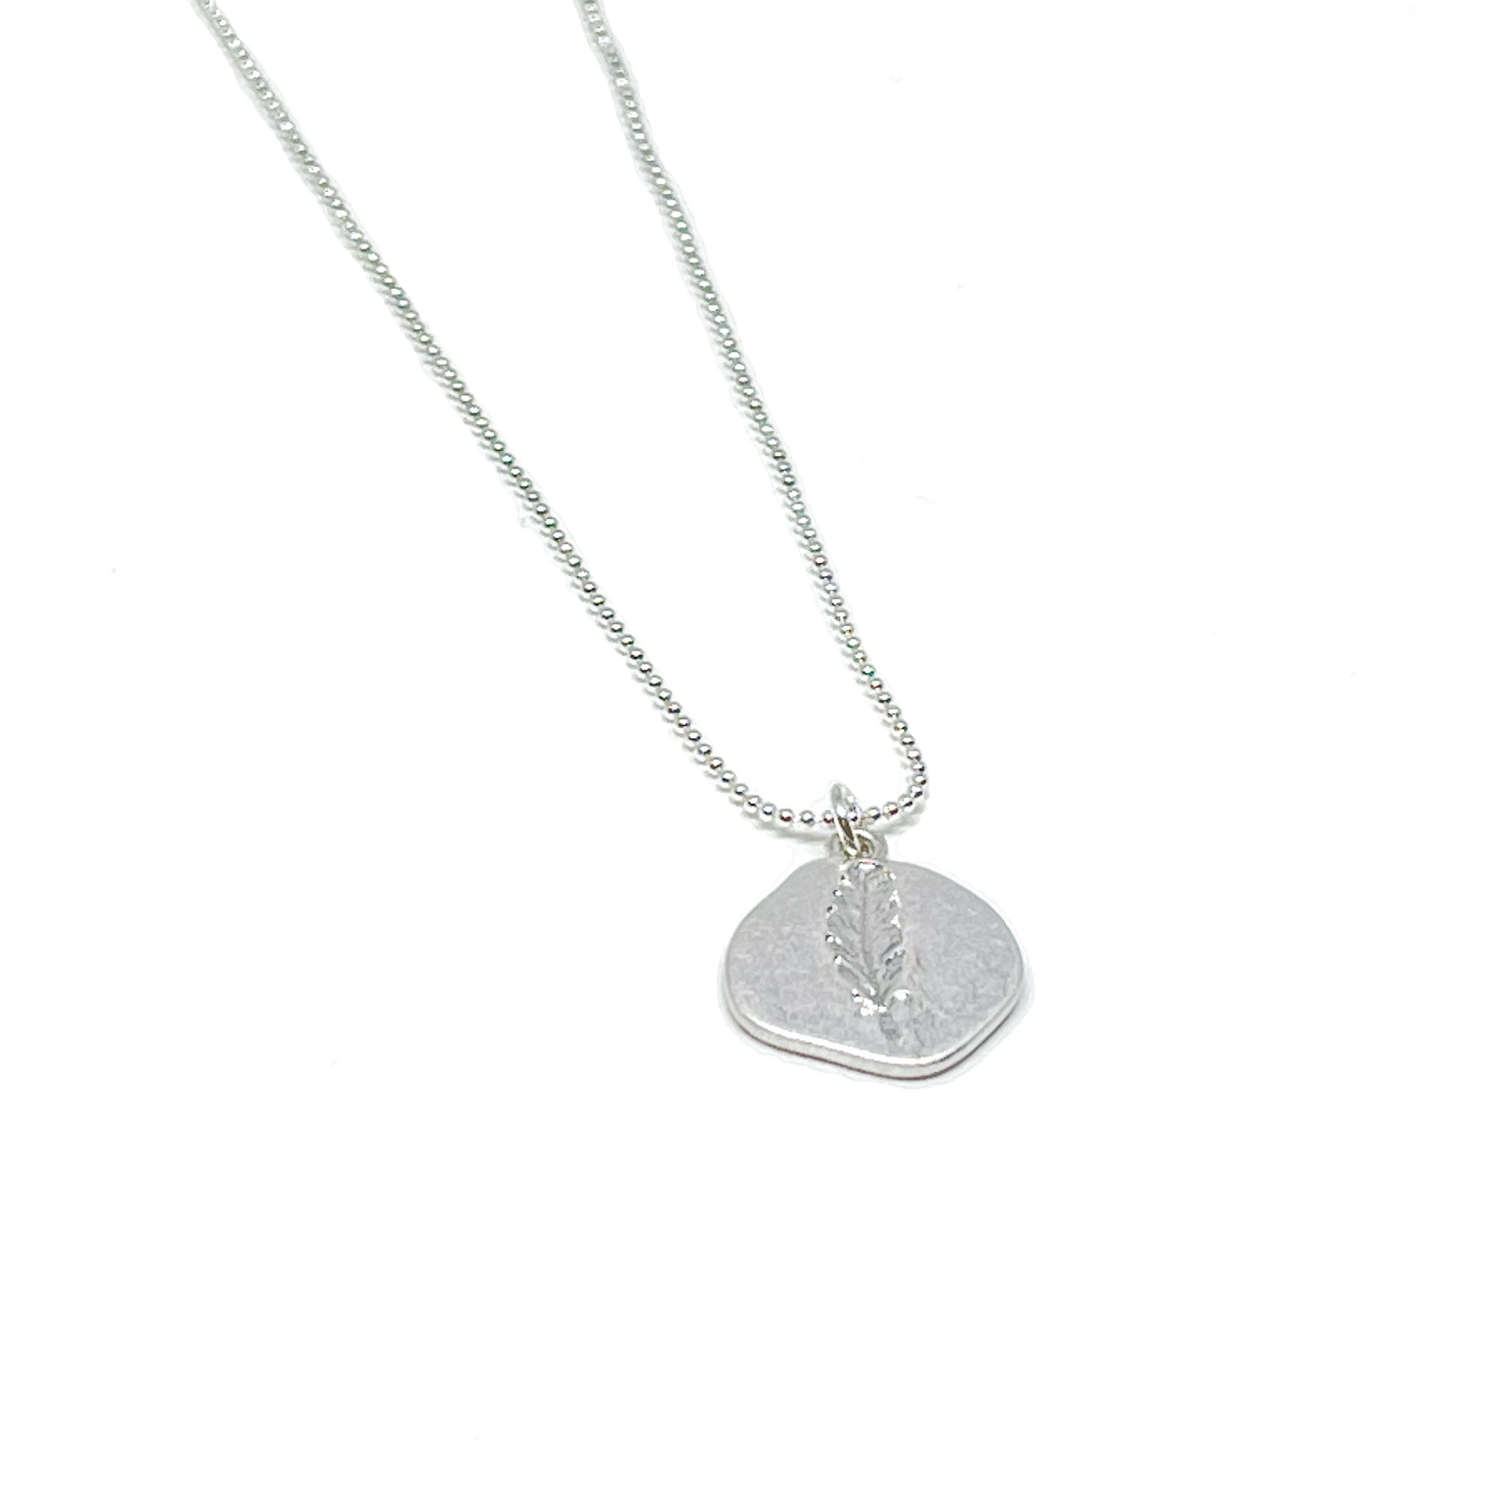 Leah Leaf Necklace - Silver